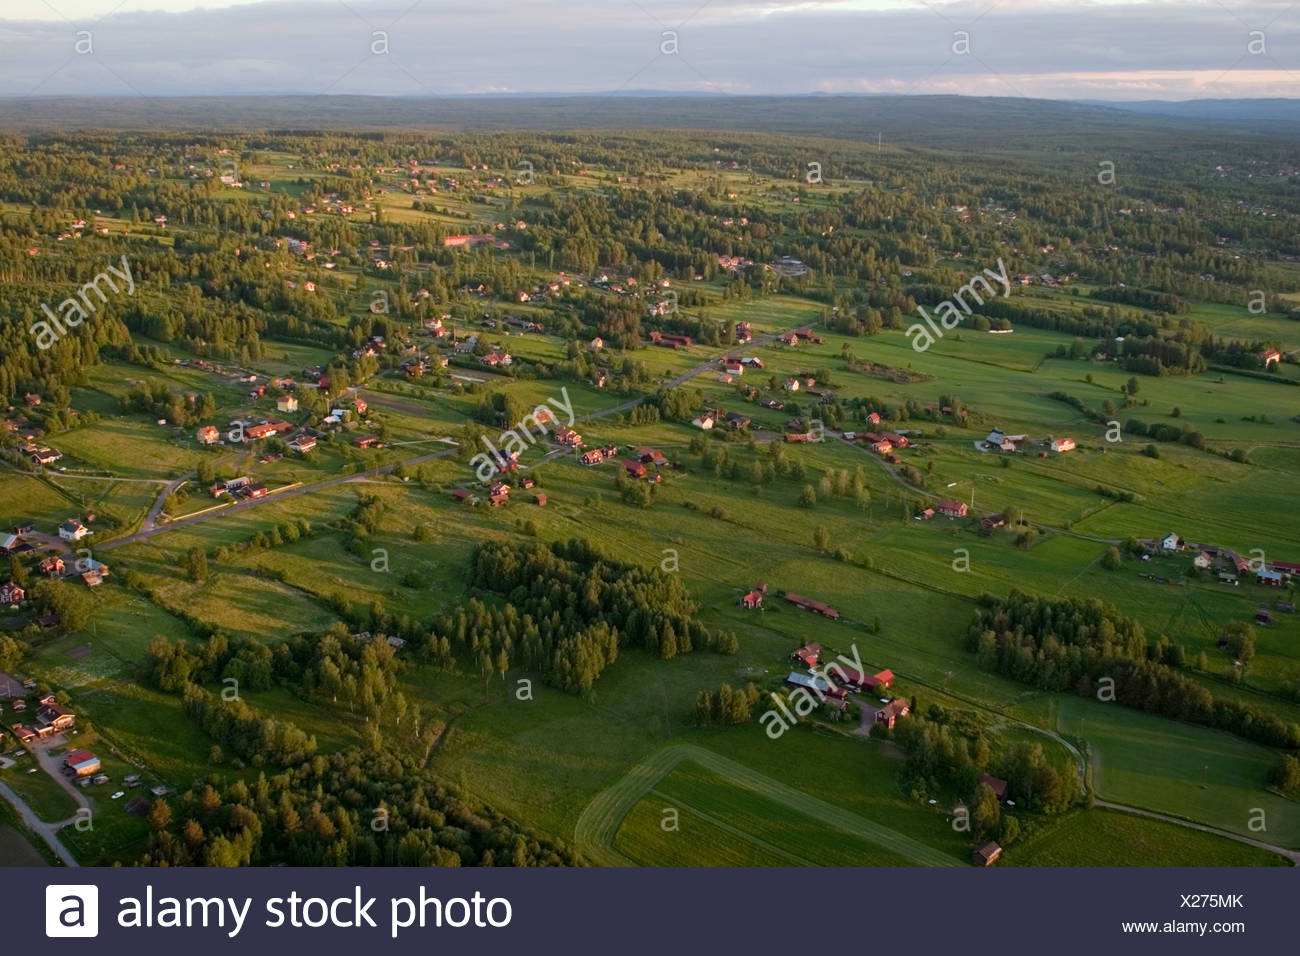 Arable land, aerial view, Sweden. - Stock Image